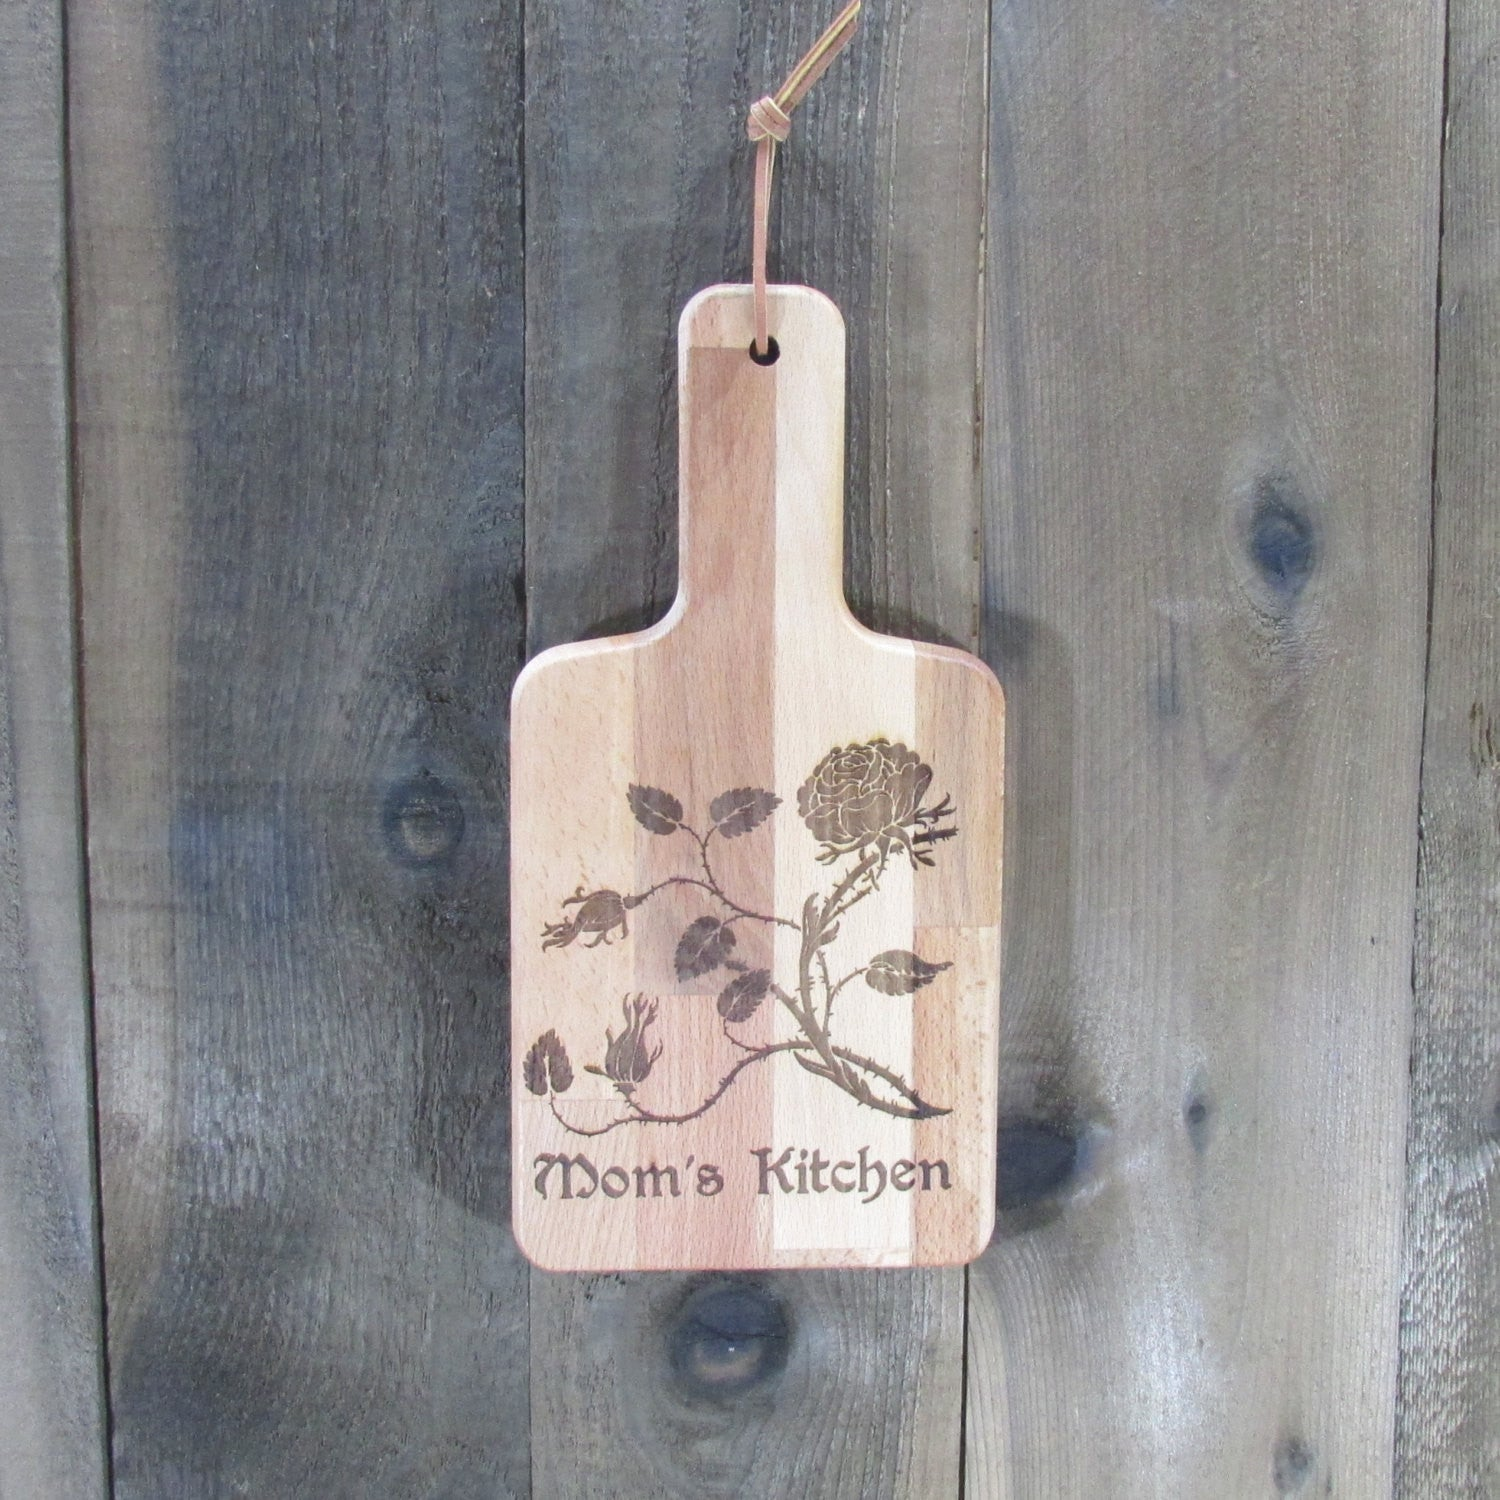 Mom's Kitchen Bamboo Cutting Board Rose Flower Wall Hanging - Laser Engraved Personalize